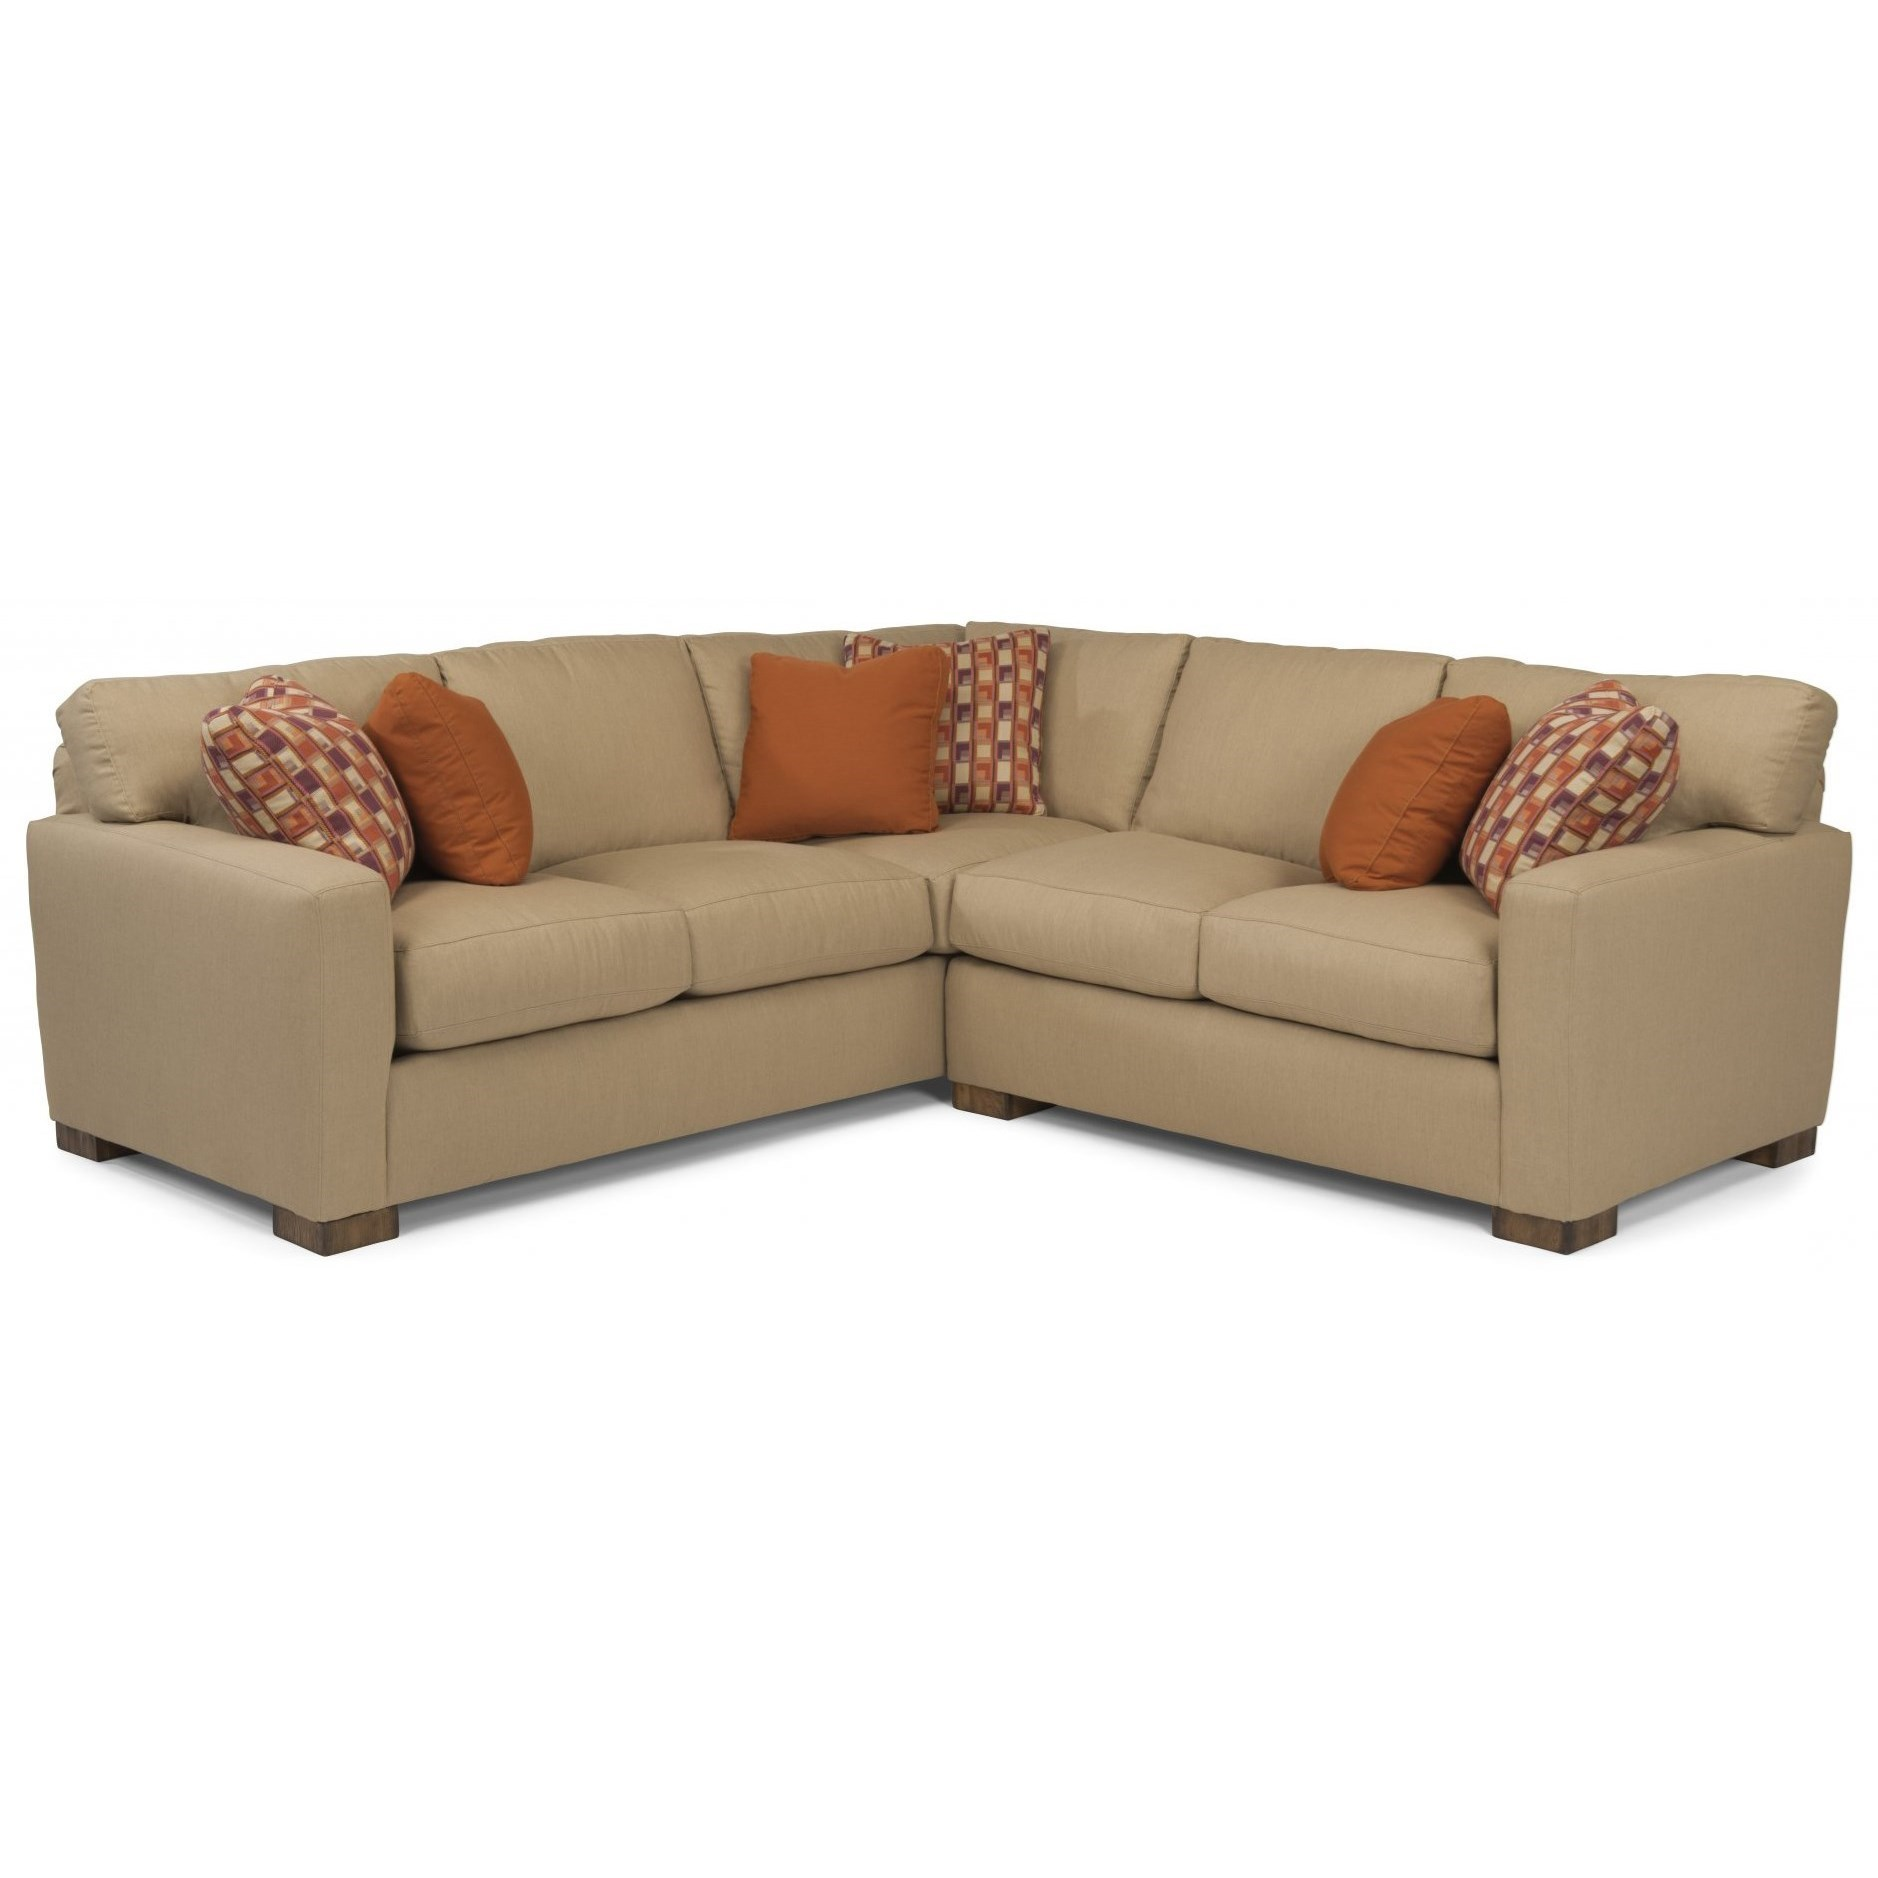 Captivating Bryant Contemporary 4 Seat Sectional With LAF Corner Sofa By Flexsteel